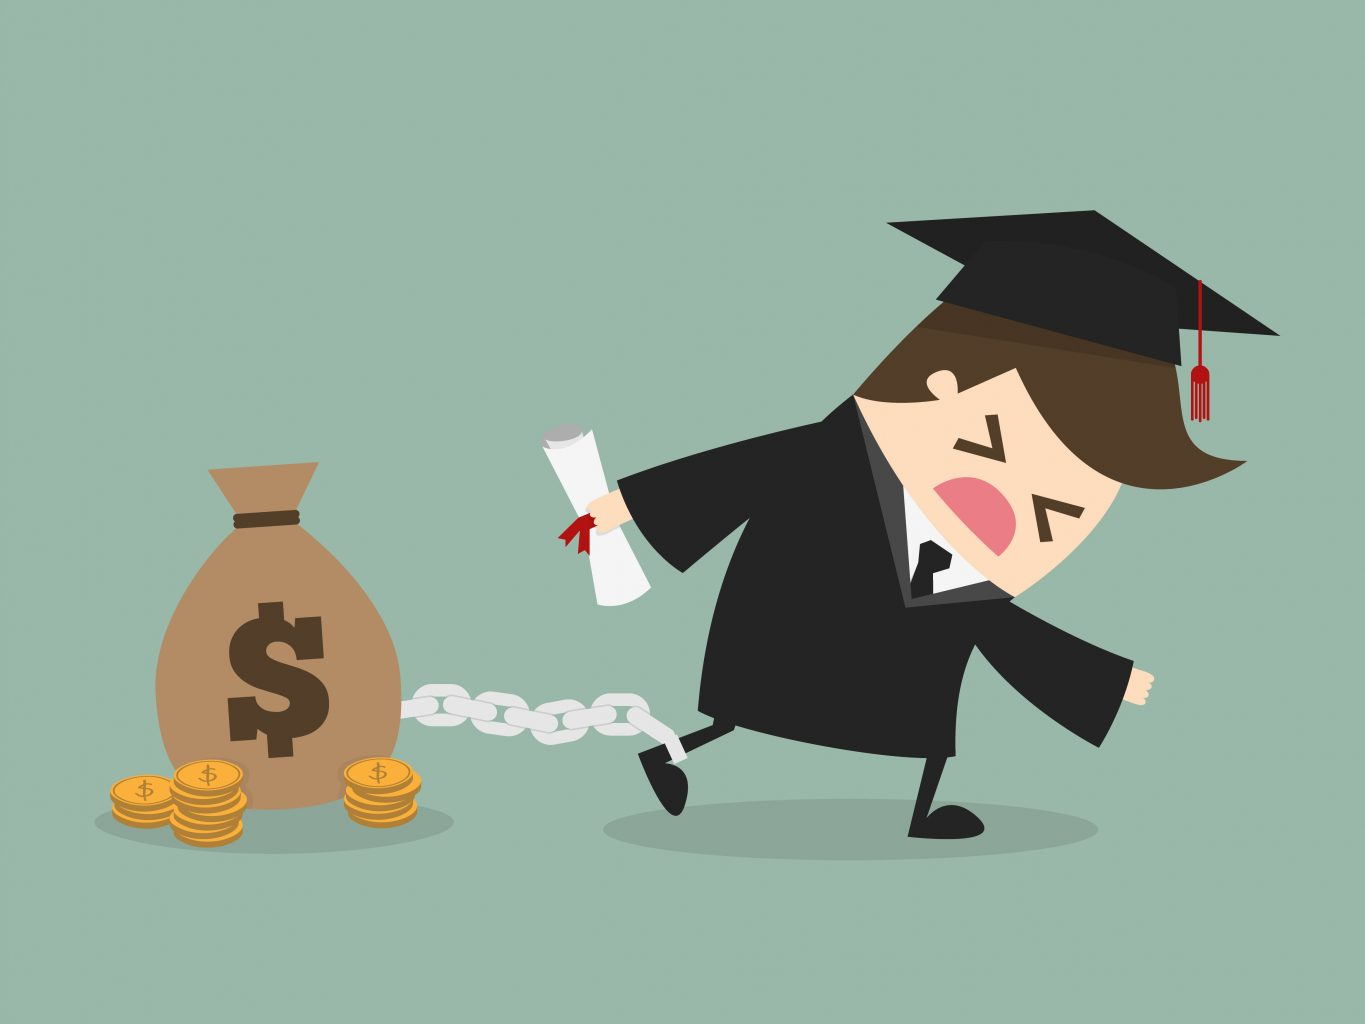 3 Biggest Mistakes to Avoid When Getting Student Loans